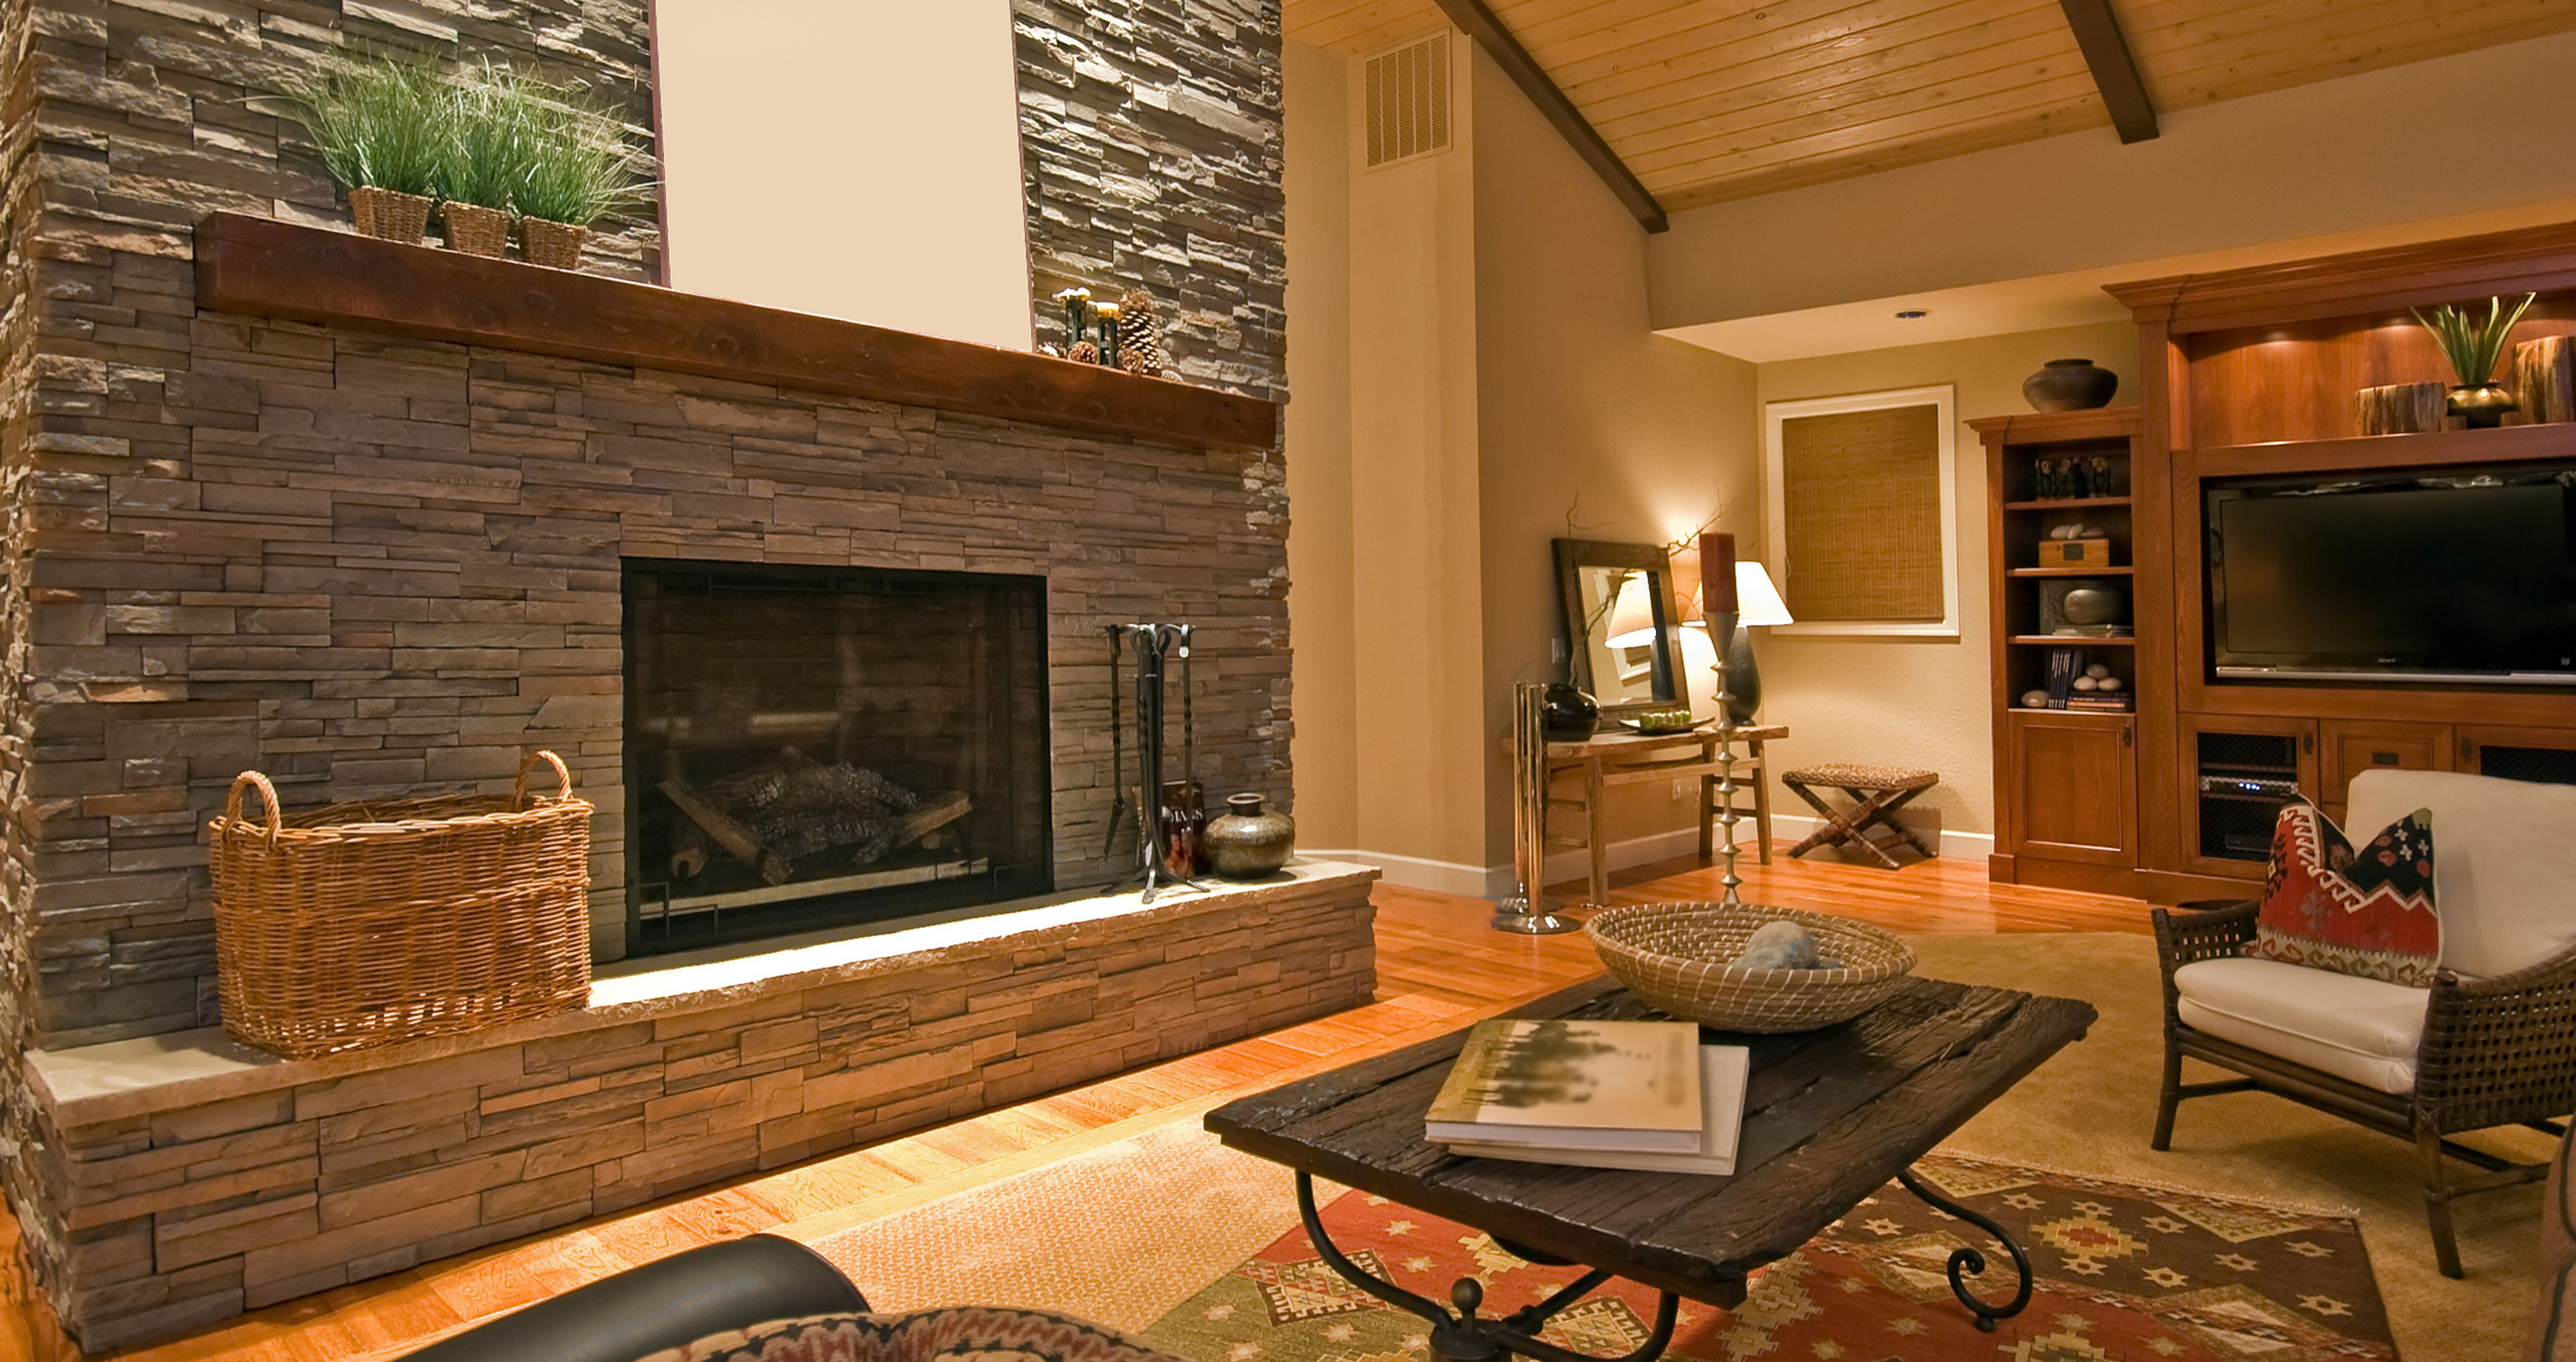 Pin by robyn severs on fireplace makeover pinterest stone